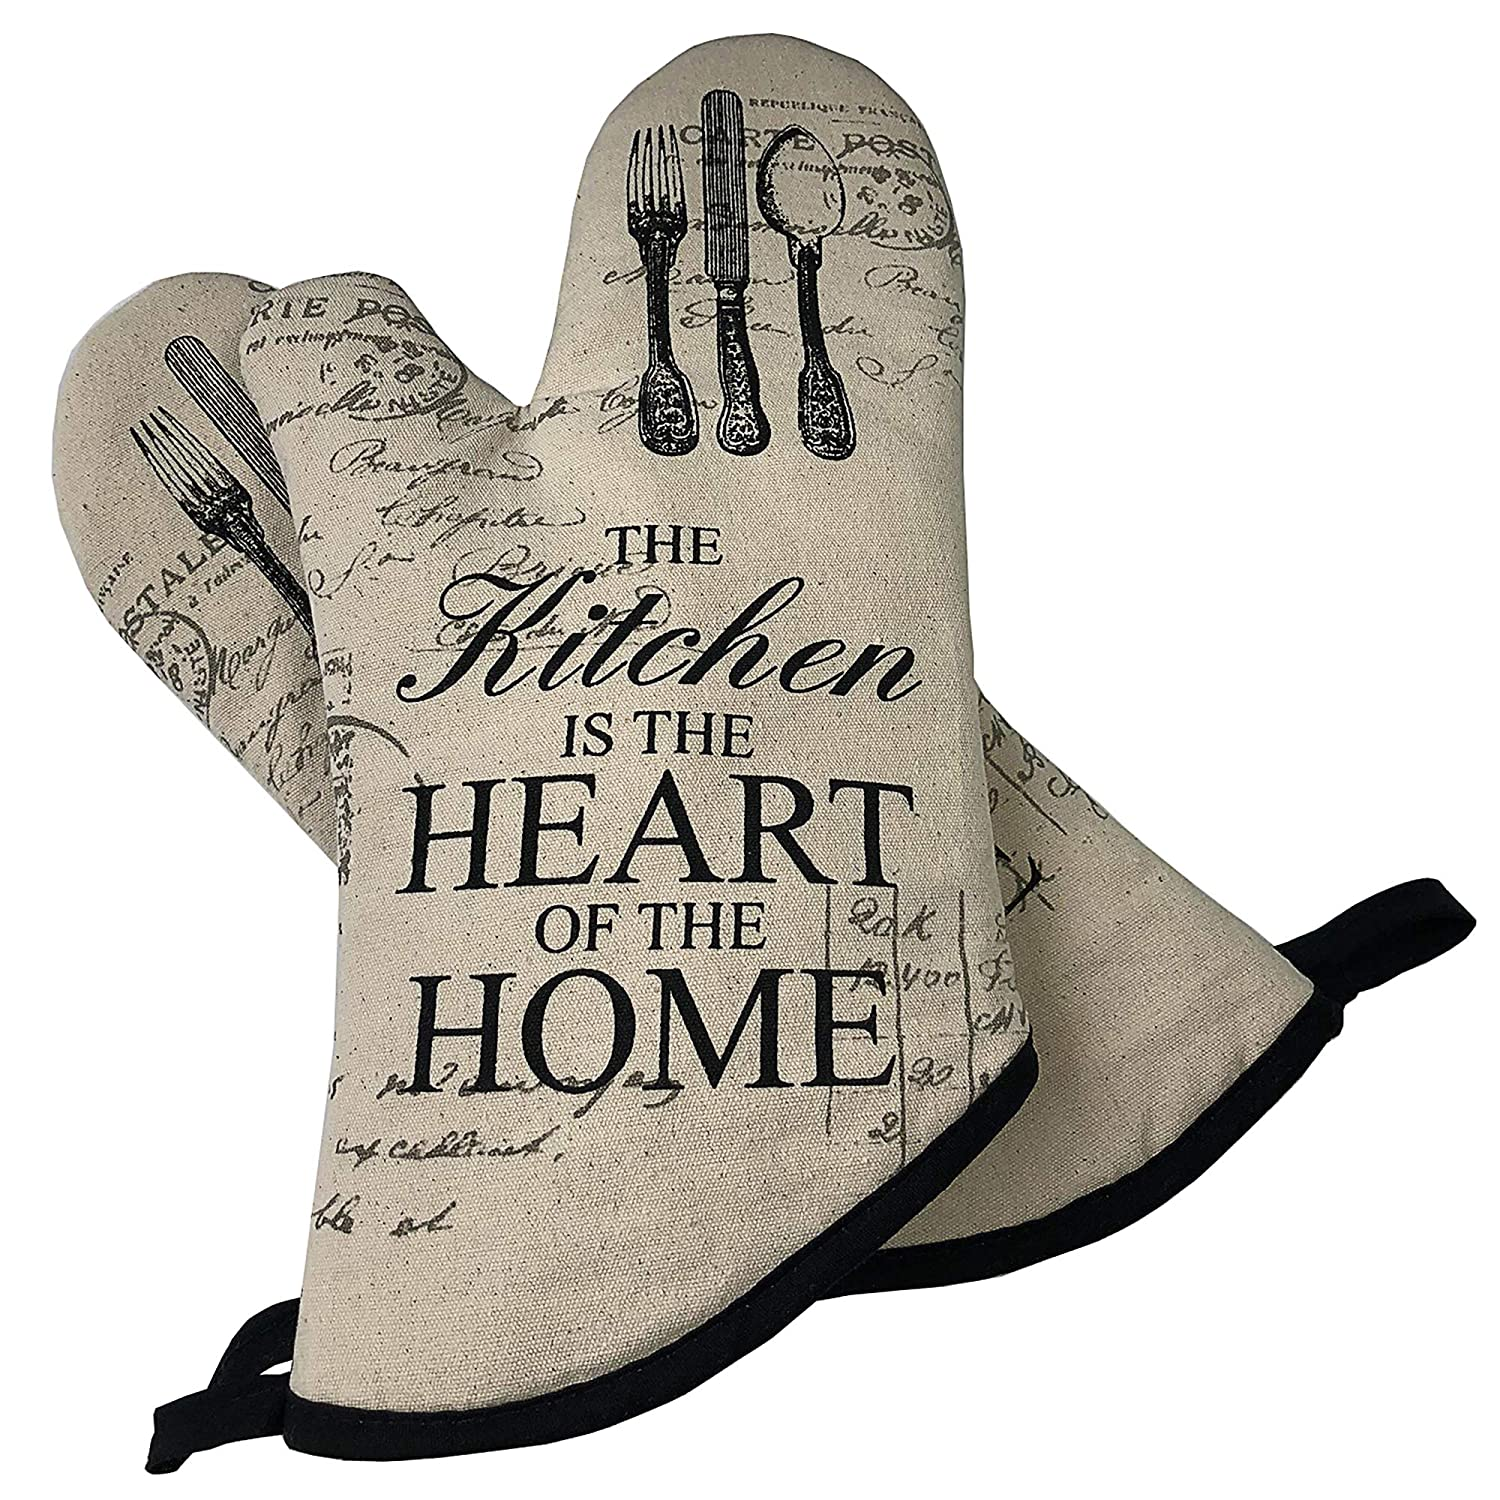 FIGROL Kitchen Oven Mitts, Microwave Oven Glove, Extreme Heat Resistant Gloves for BBQ, Food, Grilling, Frying, Baking Premium Insulated Durable Mitts(White)